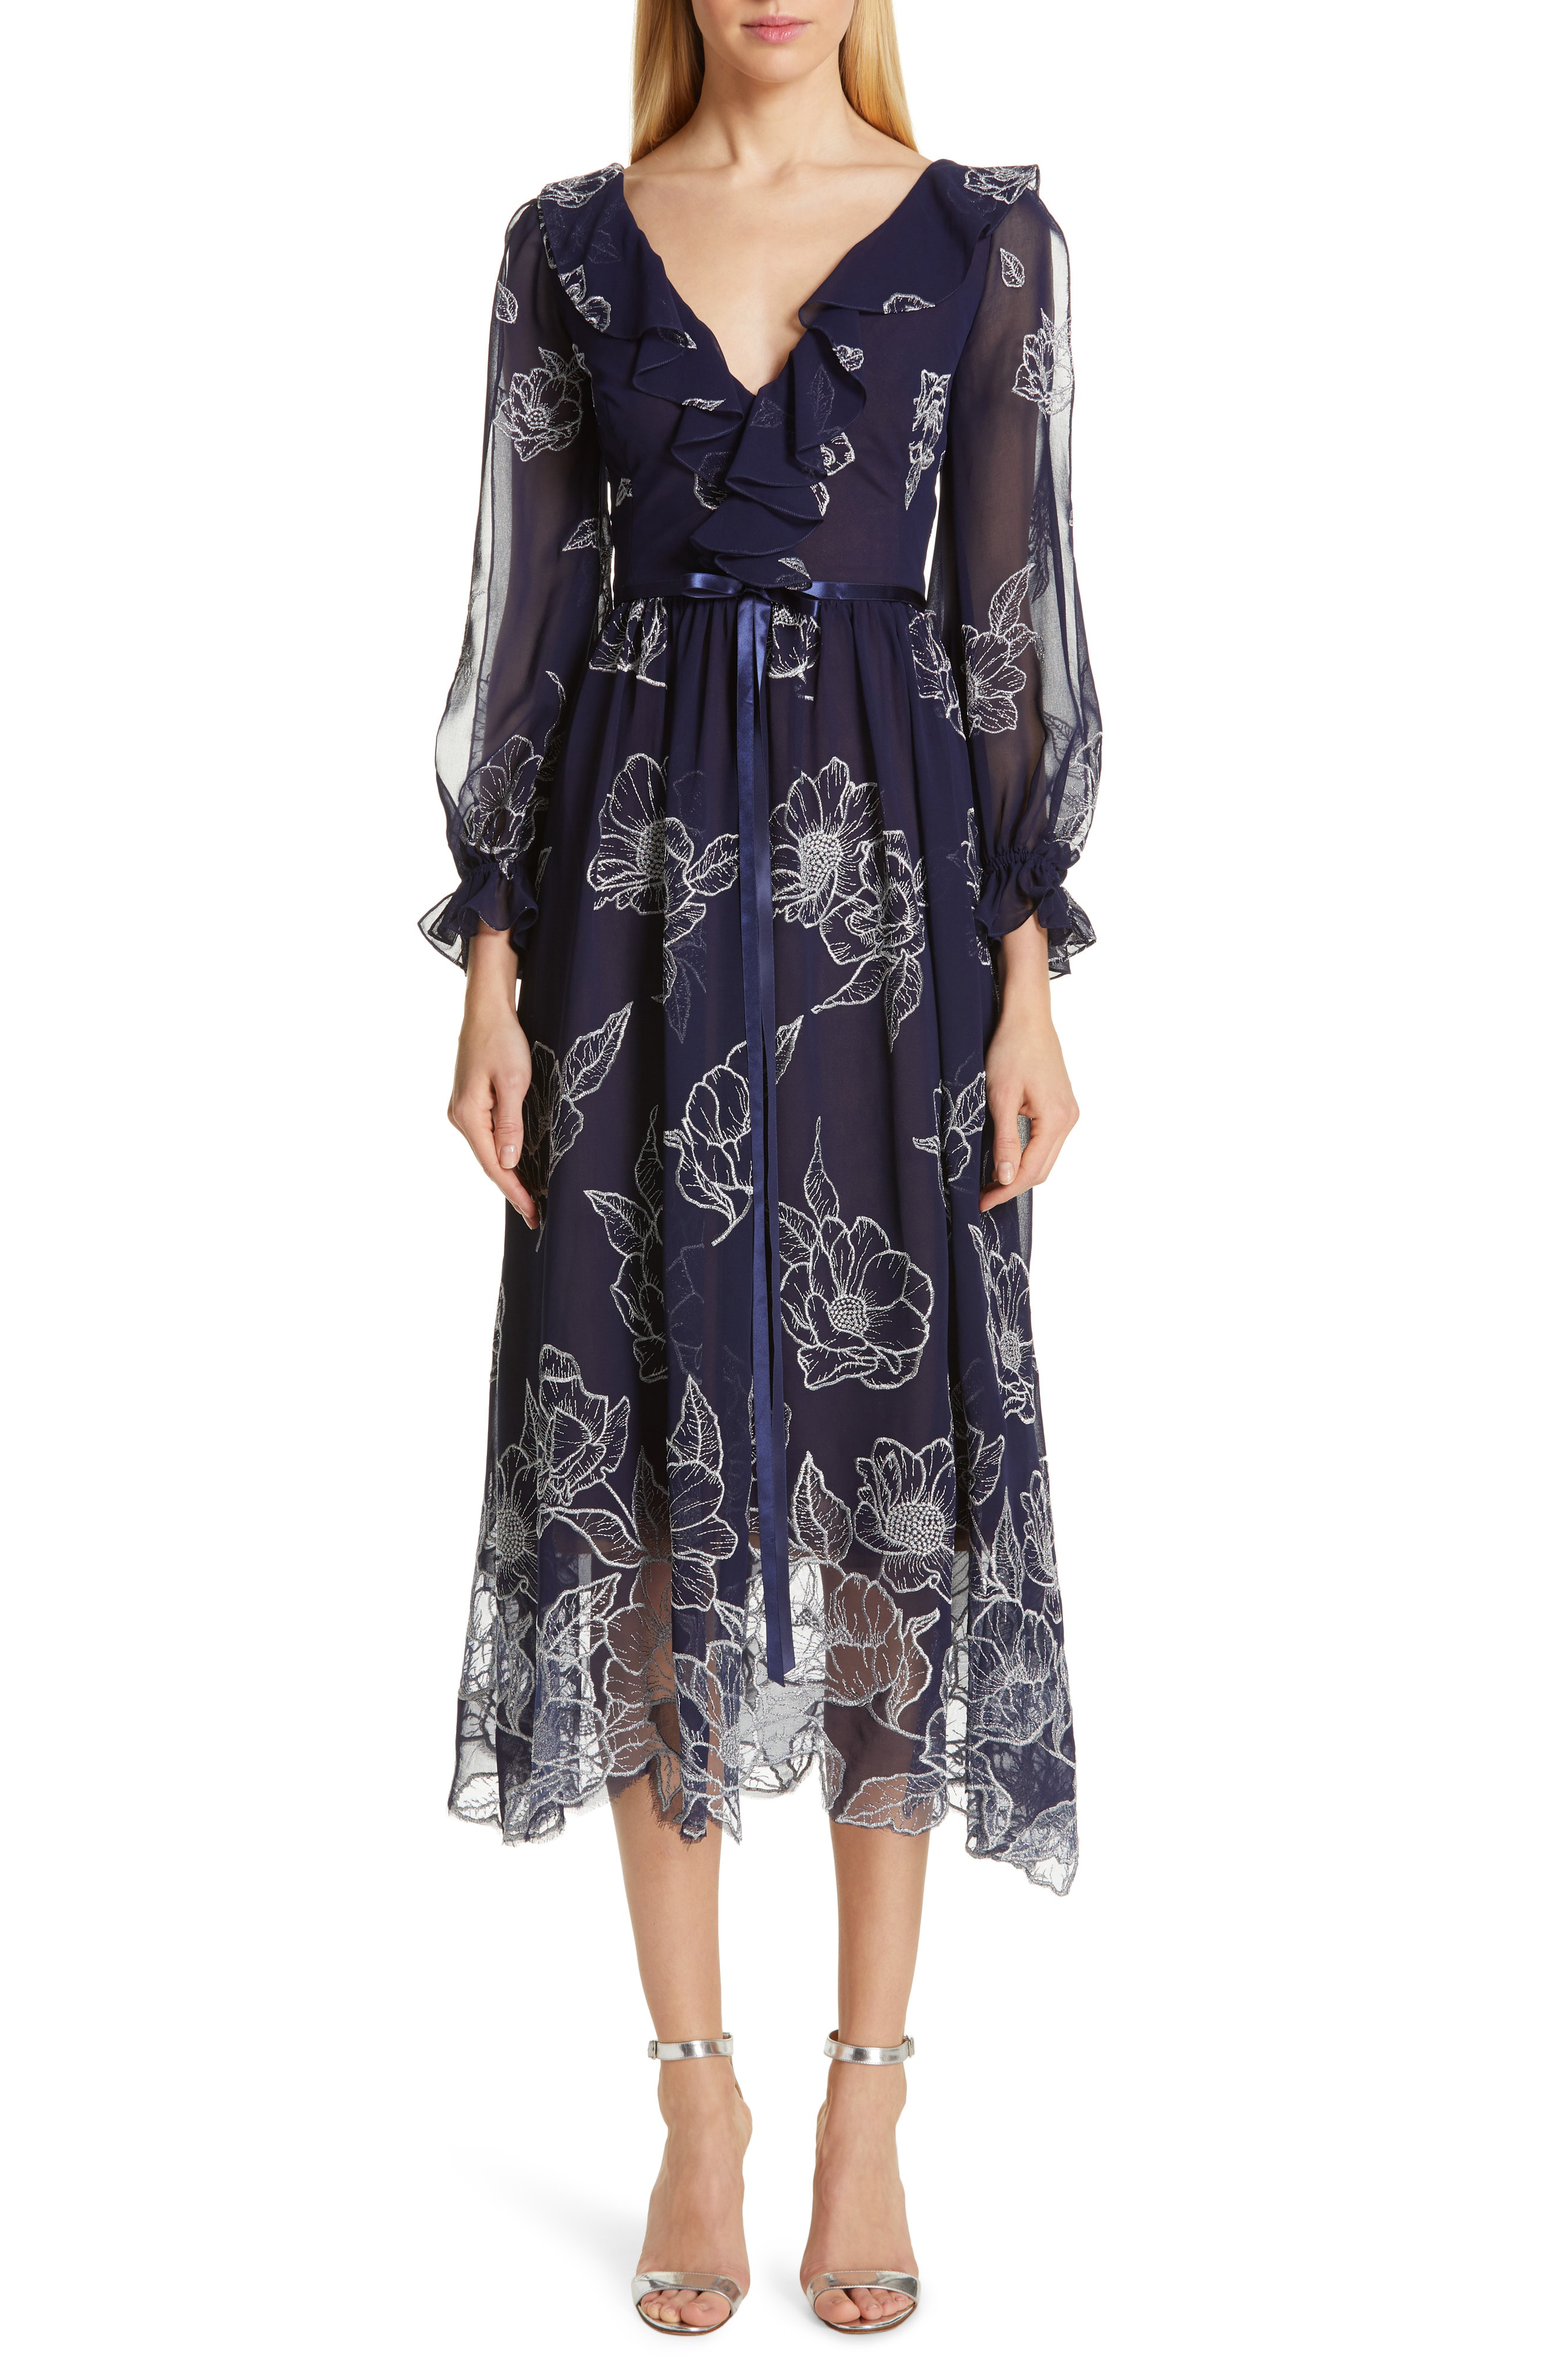 7e5fc6638bce7 Marchesa Notte Floral Embroidered Long-Sleeve Tulle & Chiffon Dress W/  Ruffle Trim In